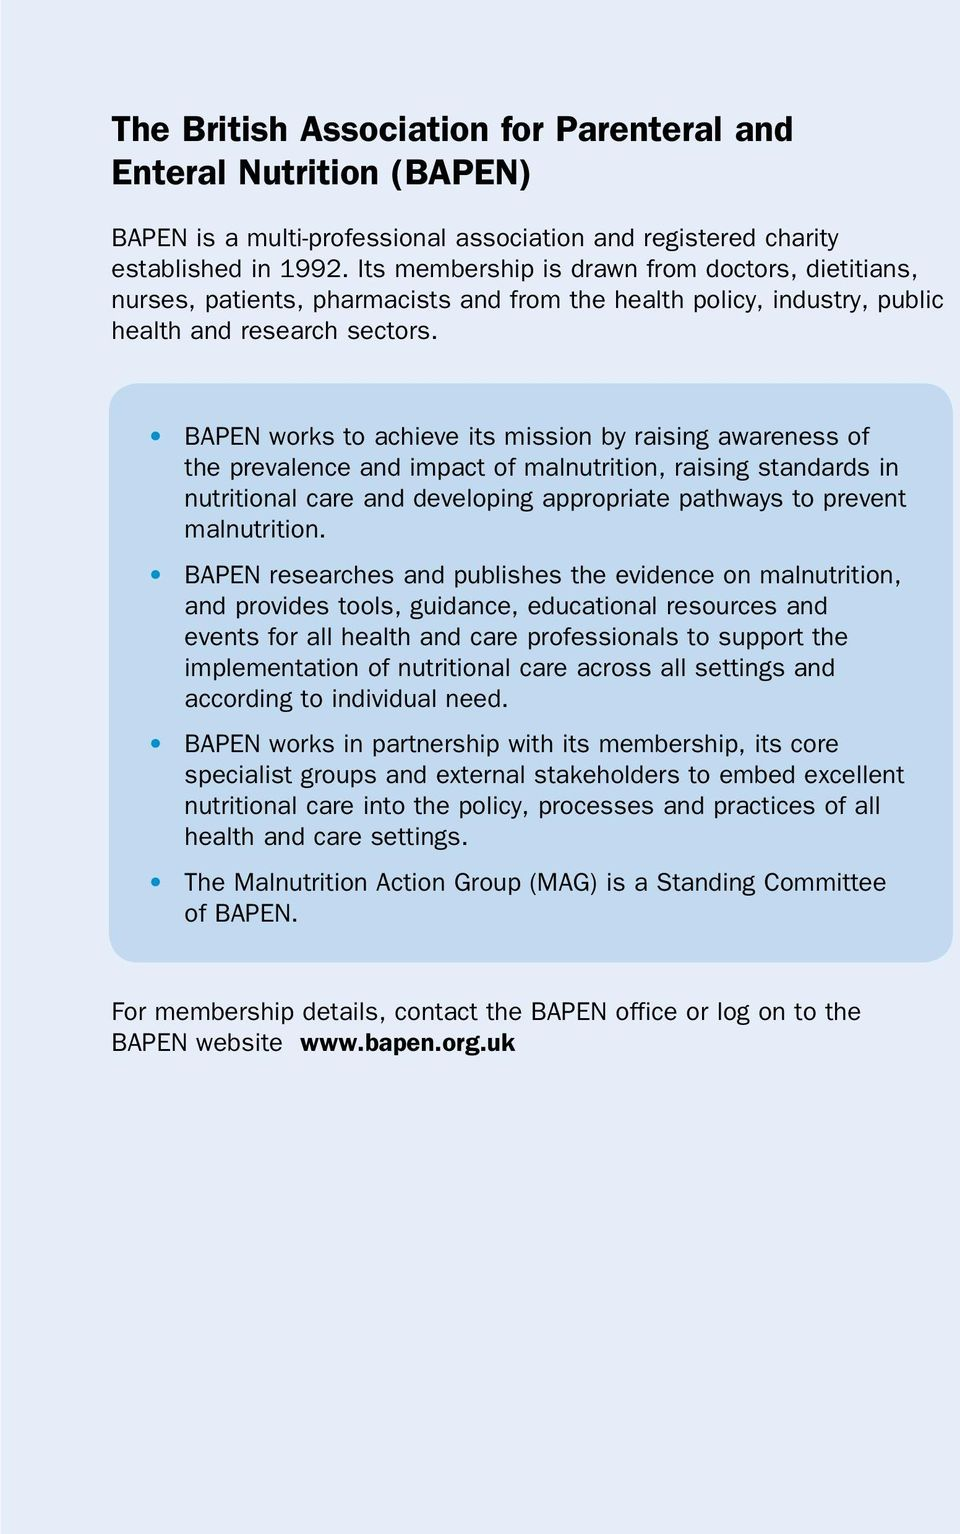 BAPEN works to achieve its mission by raising awareness of the prevalence and impact of malnutrition, raising standards in nutritional care and developing appropriate pathways to prevent malnutrition.